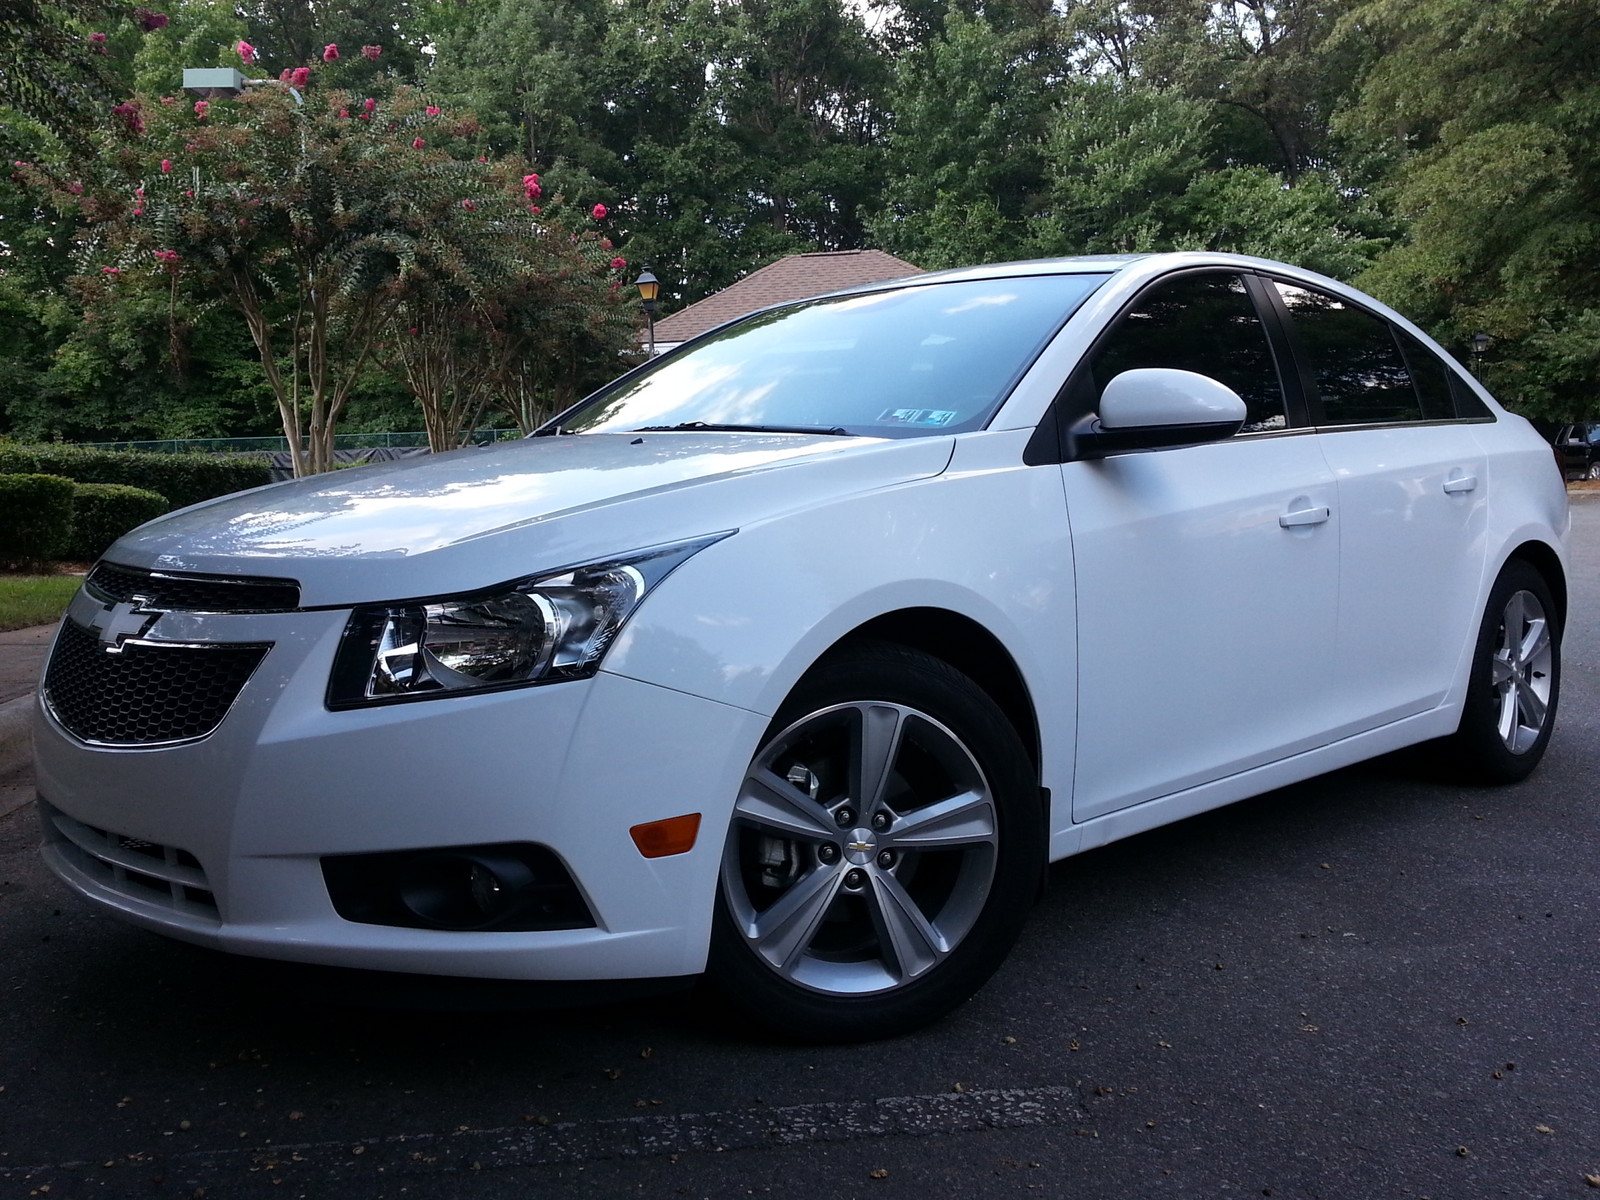 2013 white chevrolet cruze lt 2 pictures mods upgrades wallpaper dragtimes com